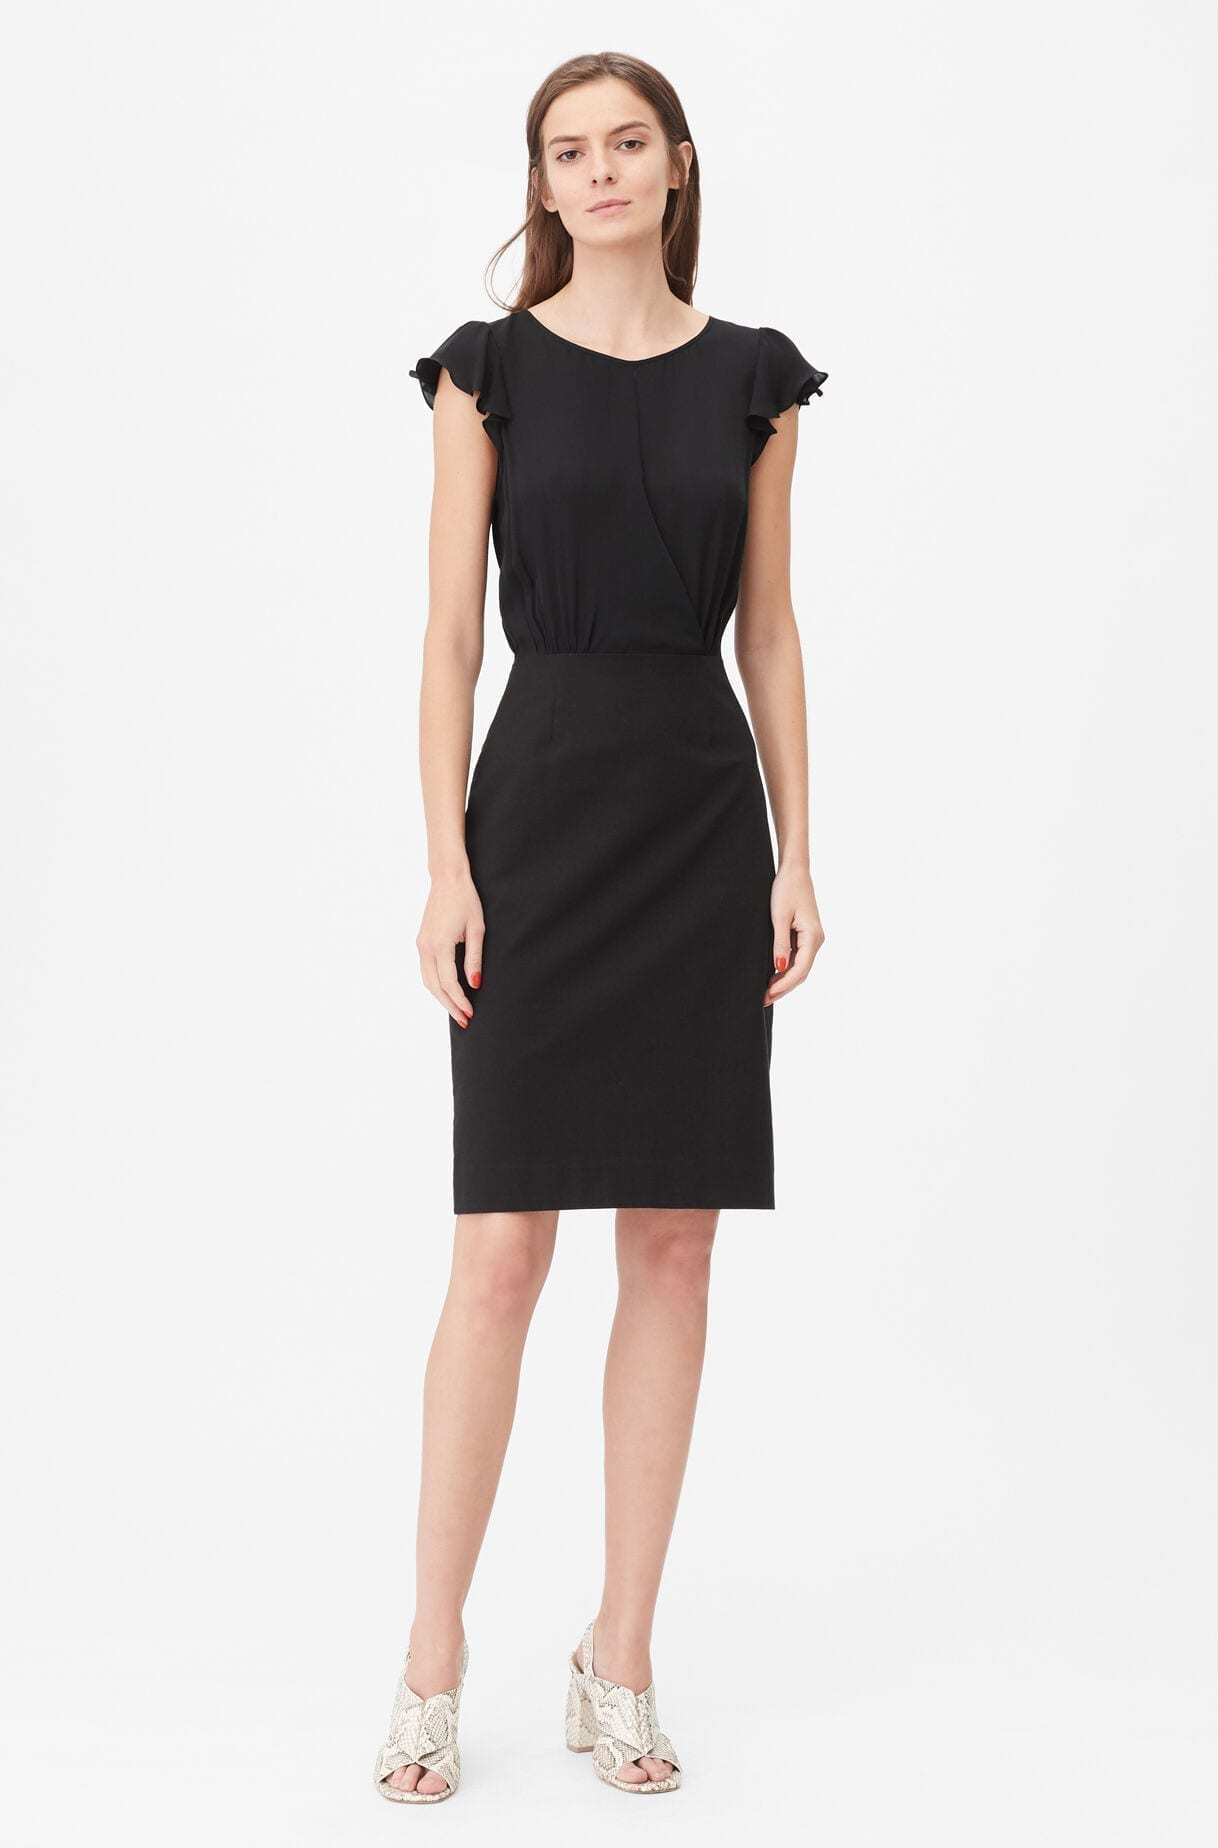 REBECKA TAYLOR Tailored Silk & Stretch Modern Suiting Dress